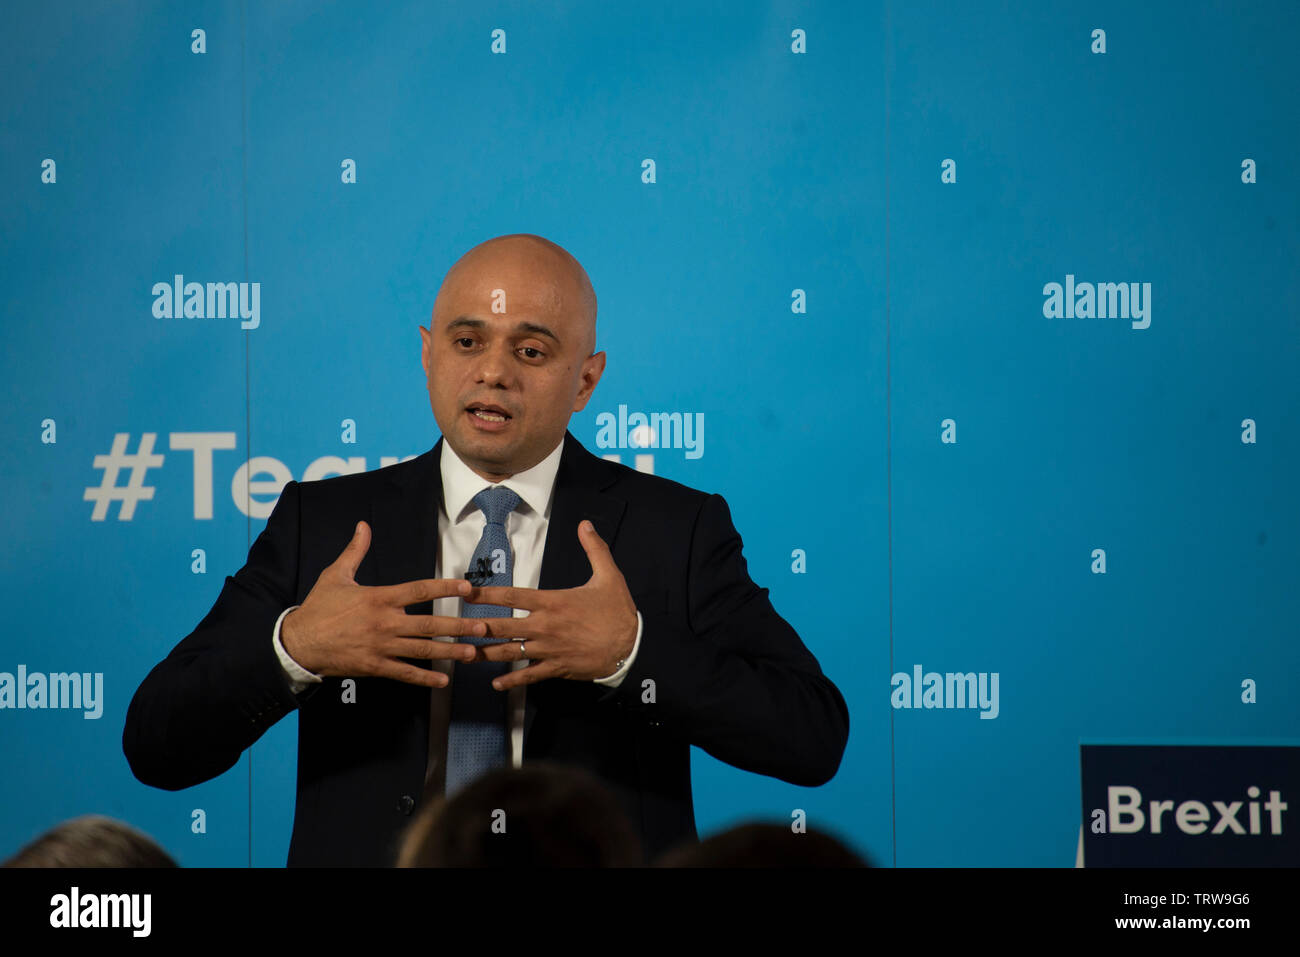 London, UK. 12th June, 2019. Home Secretary Sajid Javid launches his bid to be leader of the Conservative and Unionist Party and Prime Minister. Credit: Claire Doherty/Alamy Live News Stock Photo